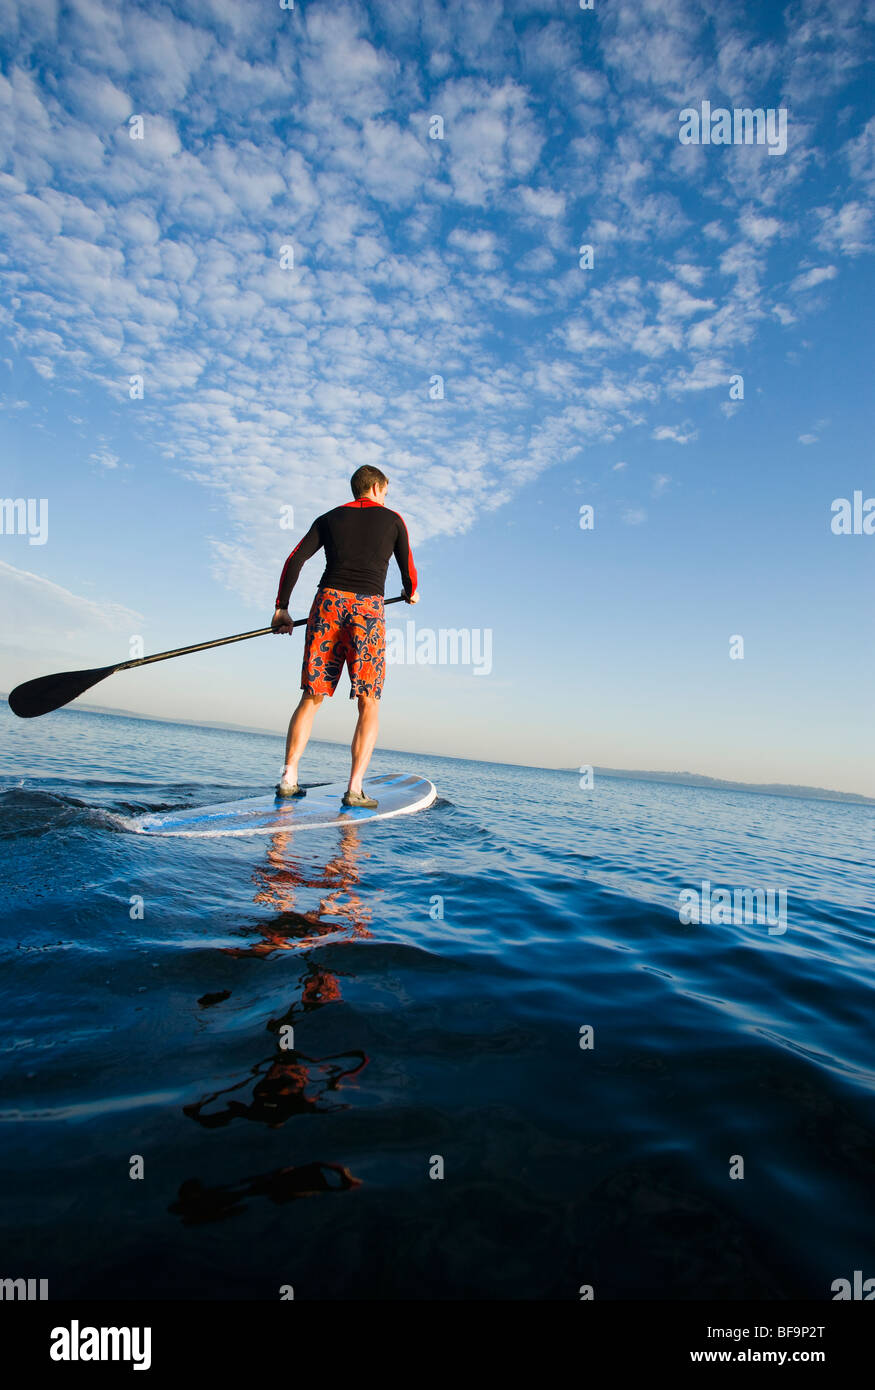 An athletic man paddling out on Elliott Bay / Puget Sound in the early morning. - Stock Image